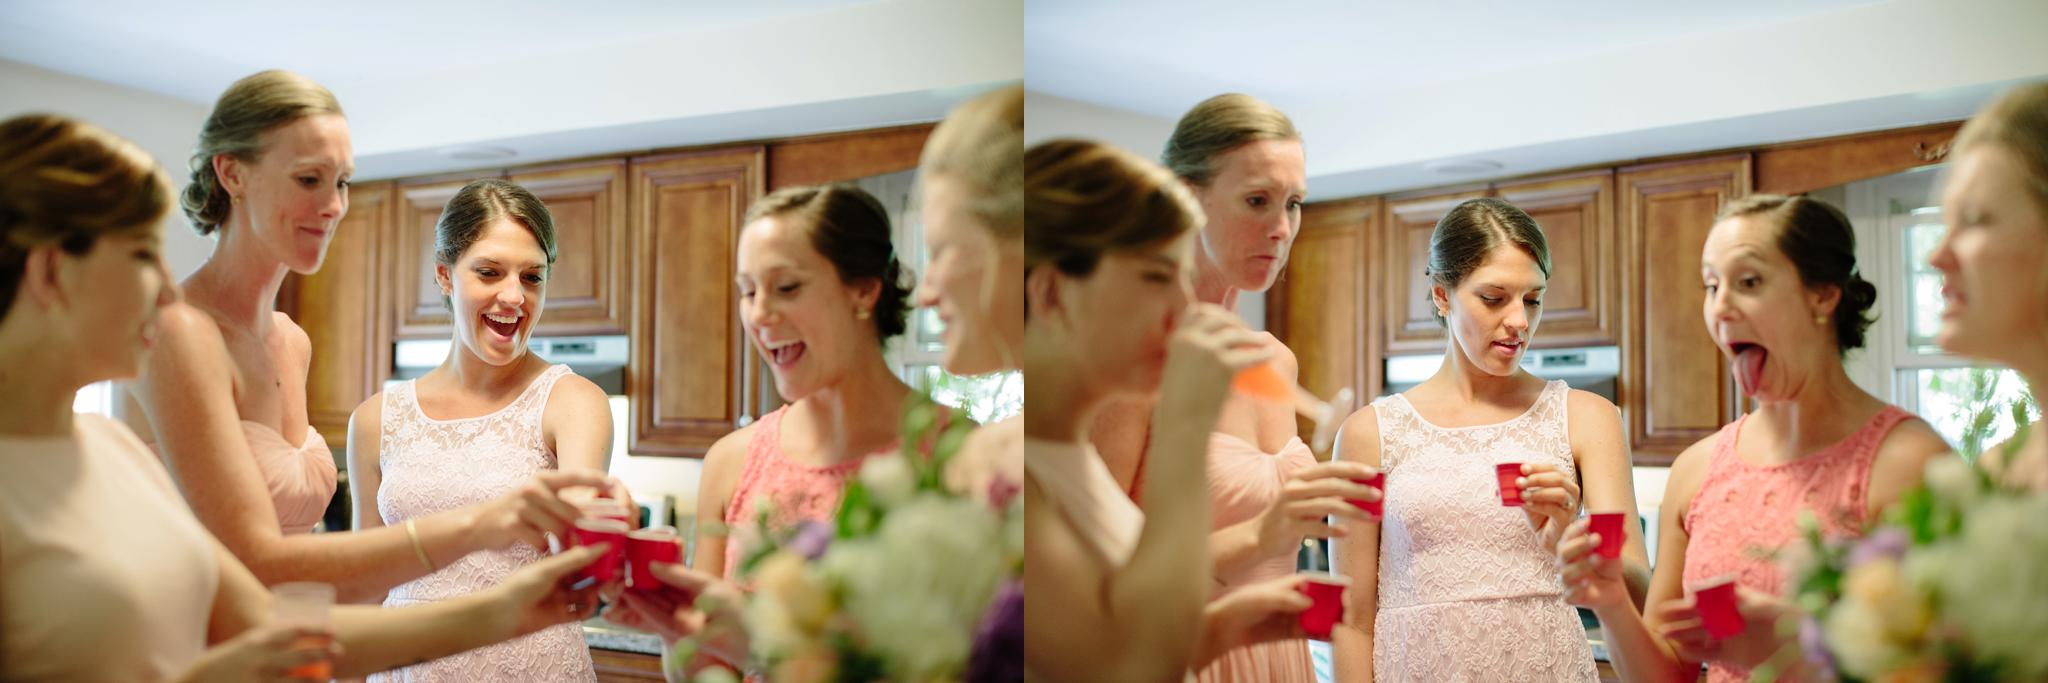 TUNKHANNOCK_PA_WEDDING_PHOTOGRAPHER_YOUNG_WEDDING_2897.jpg